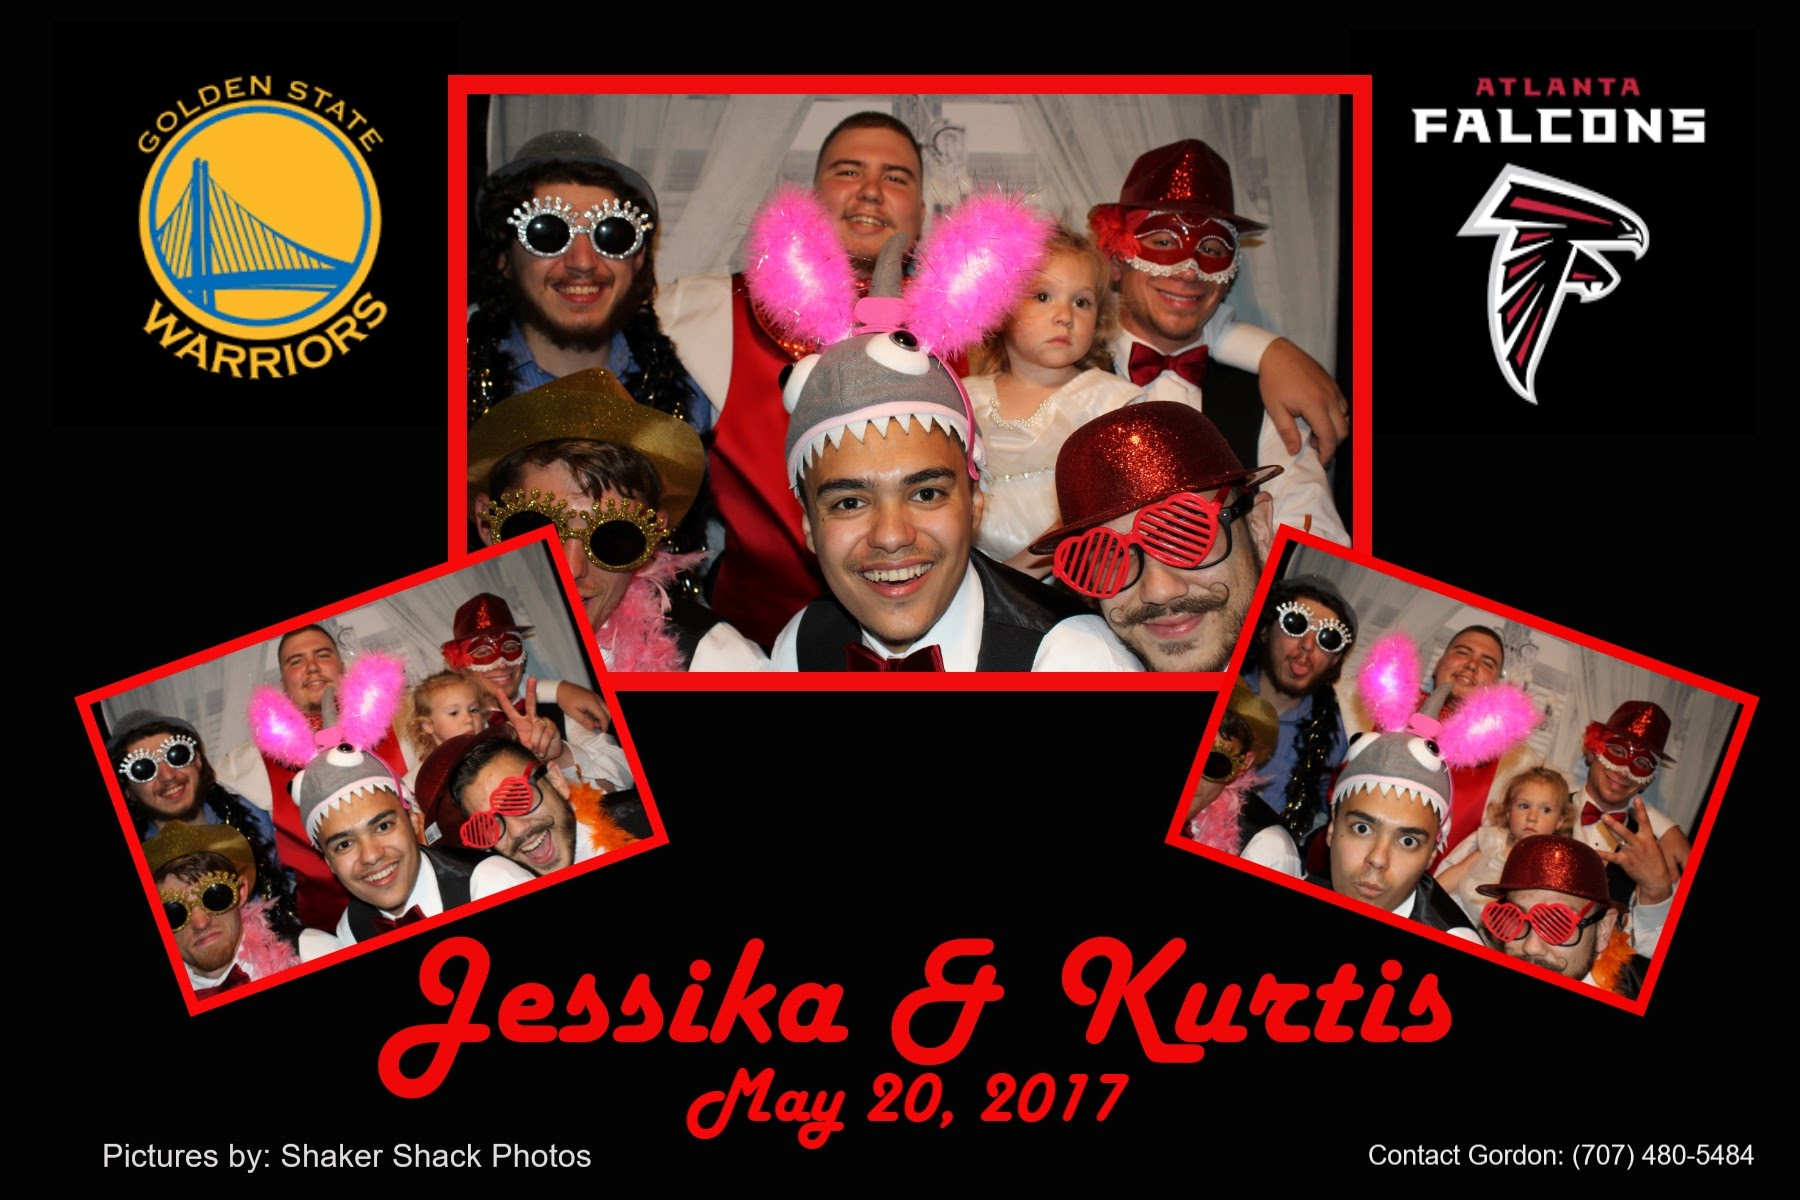 Jessika & Kurtis' Wedding